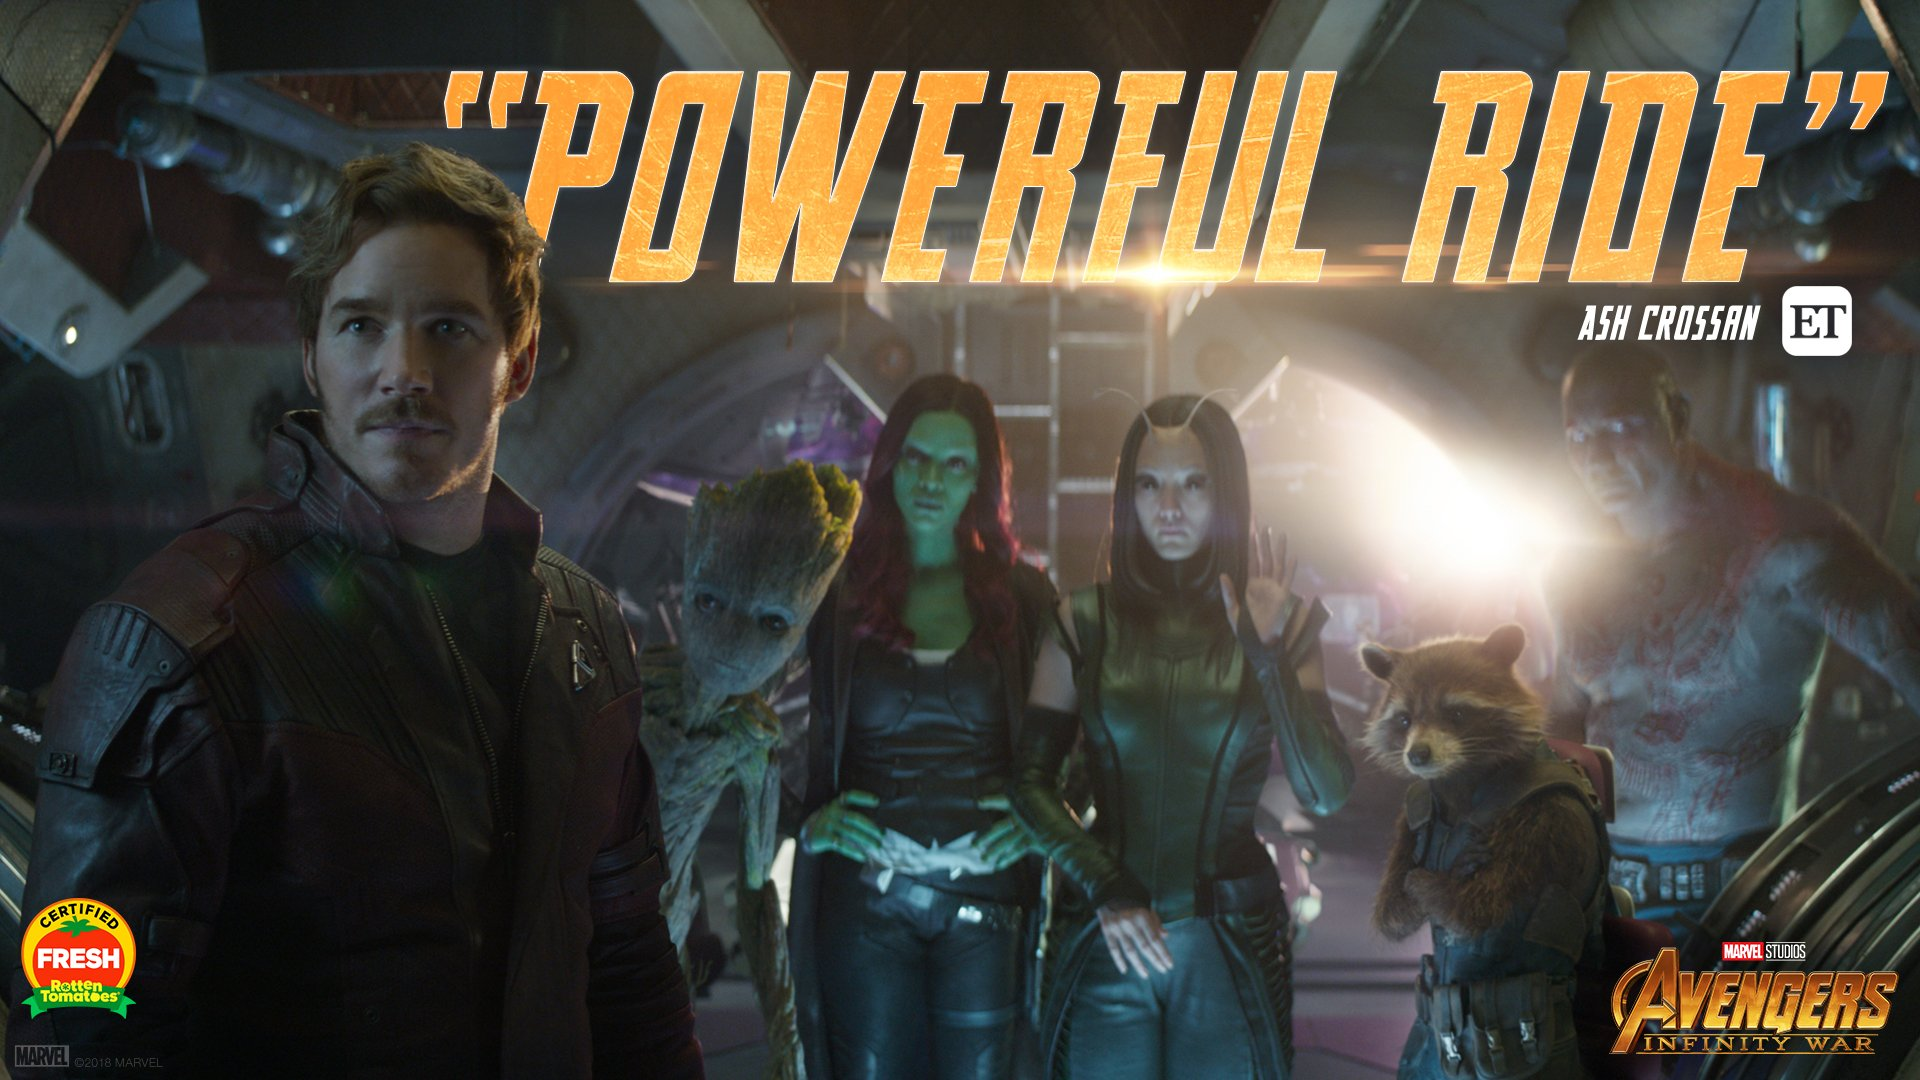 See Marvel Studios' 'Avengers: #InfinityWar' in theaters NOW. Get tickets: https://t.co/kctg8VCi1V https://t.co/rKCM08uk4H